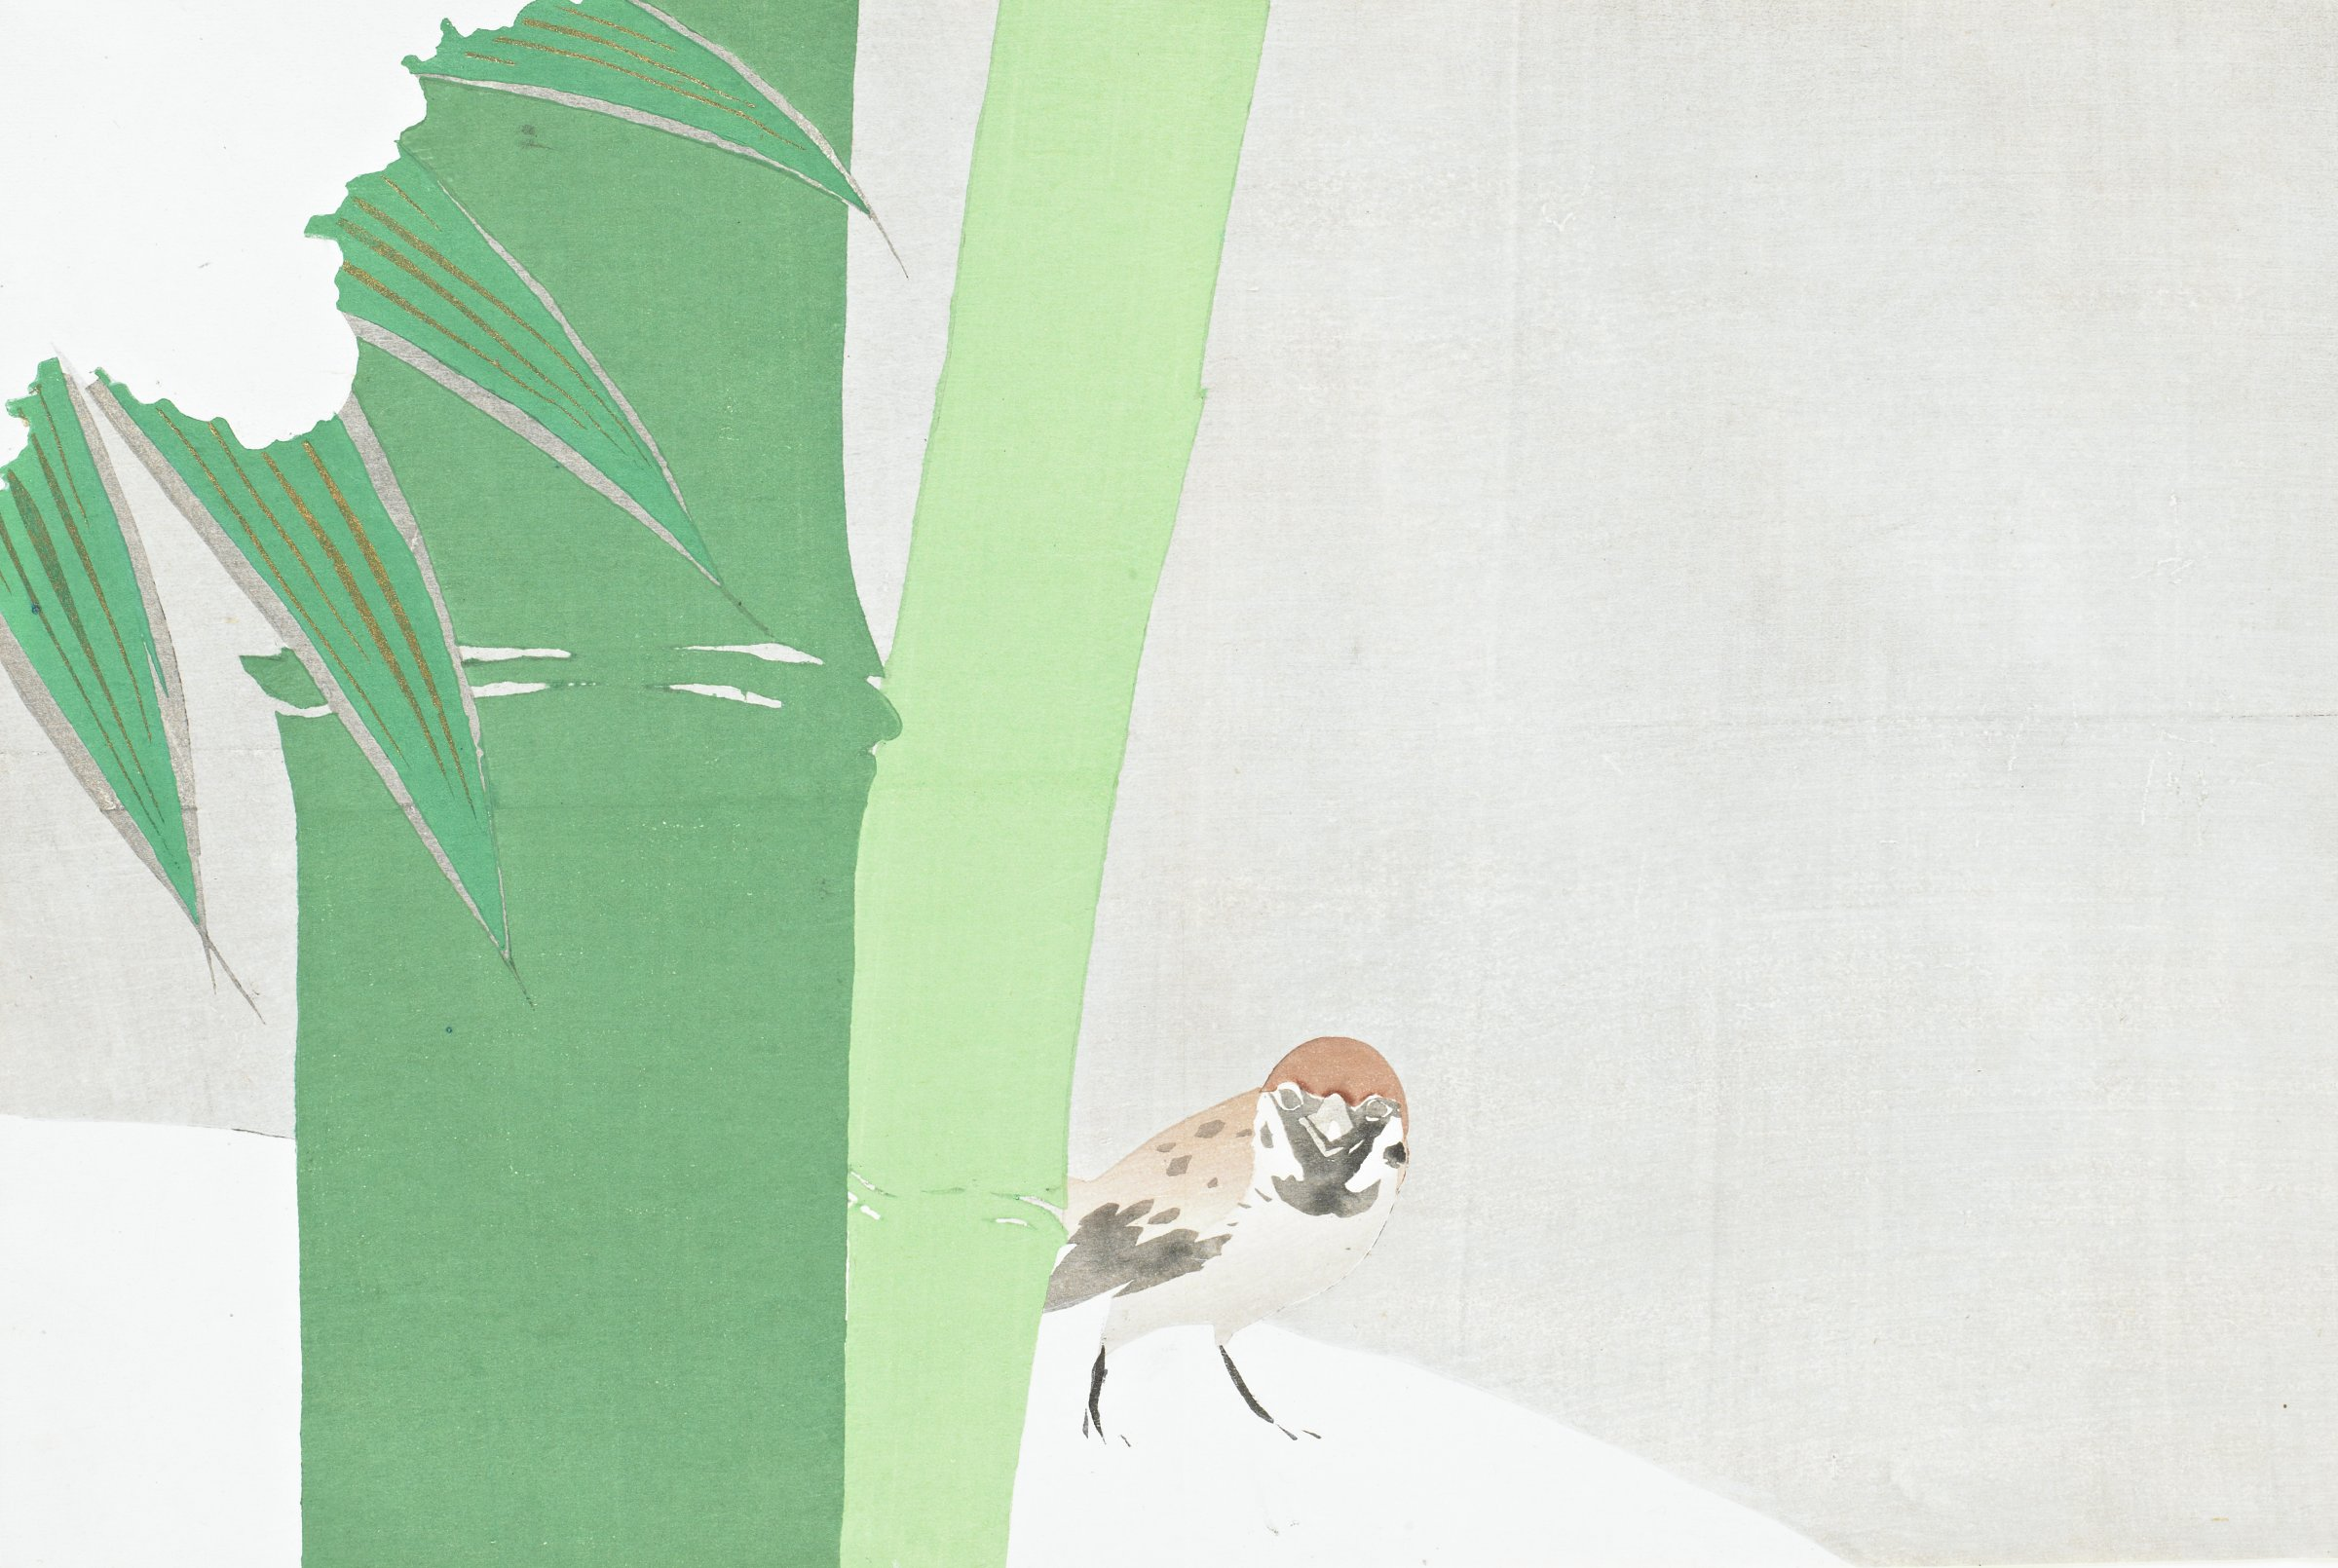 Settchu-dake (Bamboo in Snow), from Momoyogusa (A World of Things), Volume 1, Kamisaka Sekka, ink and color on paper